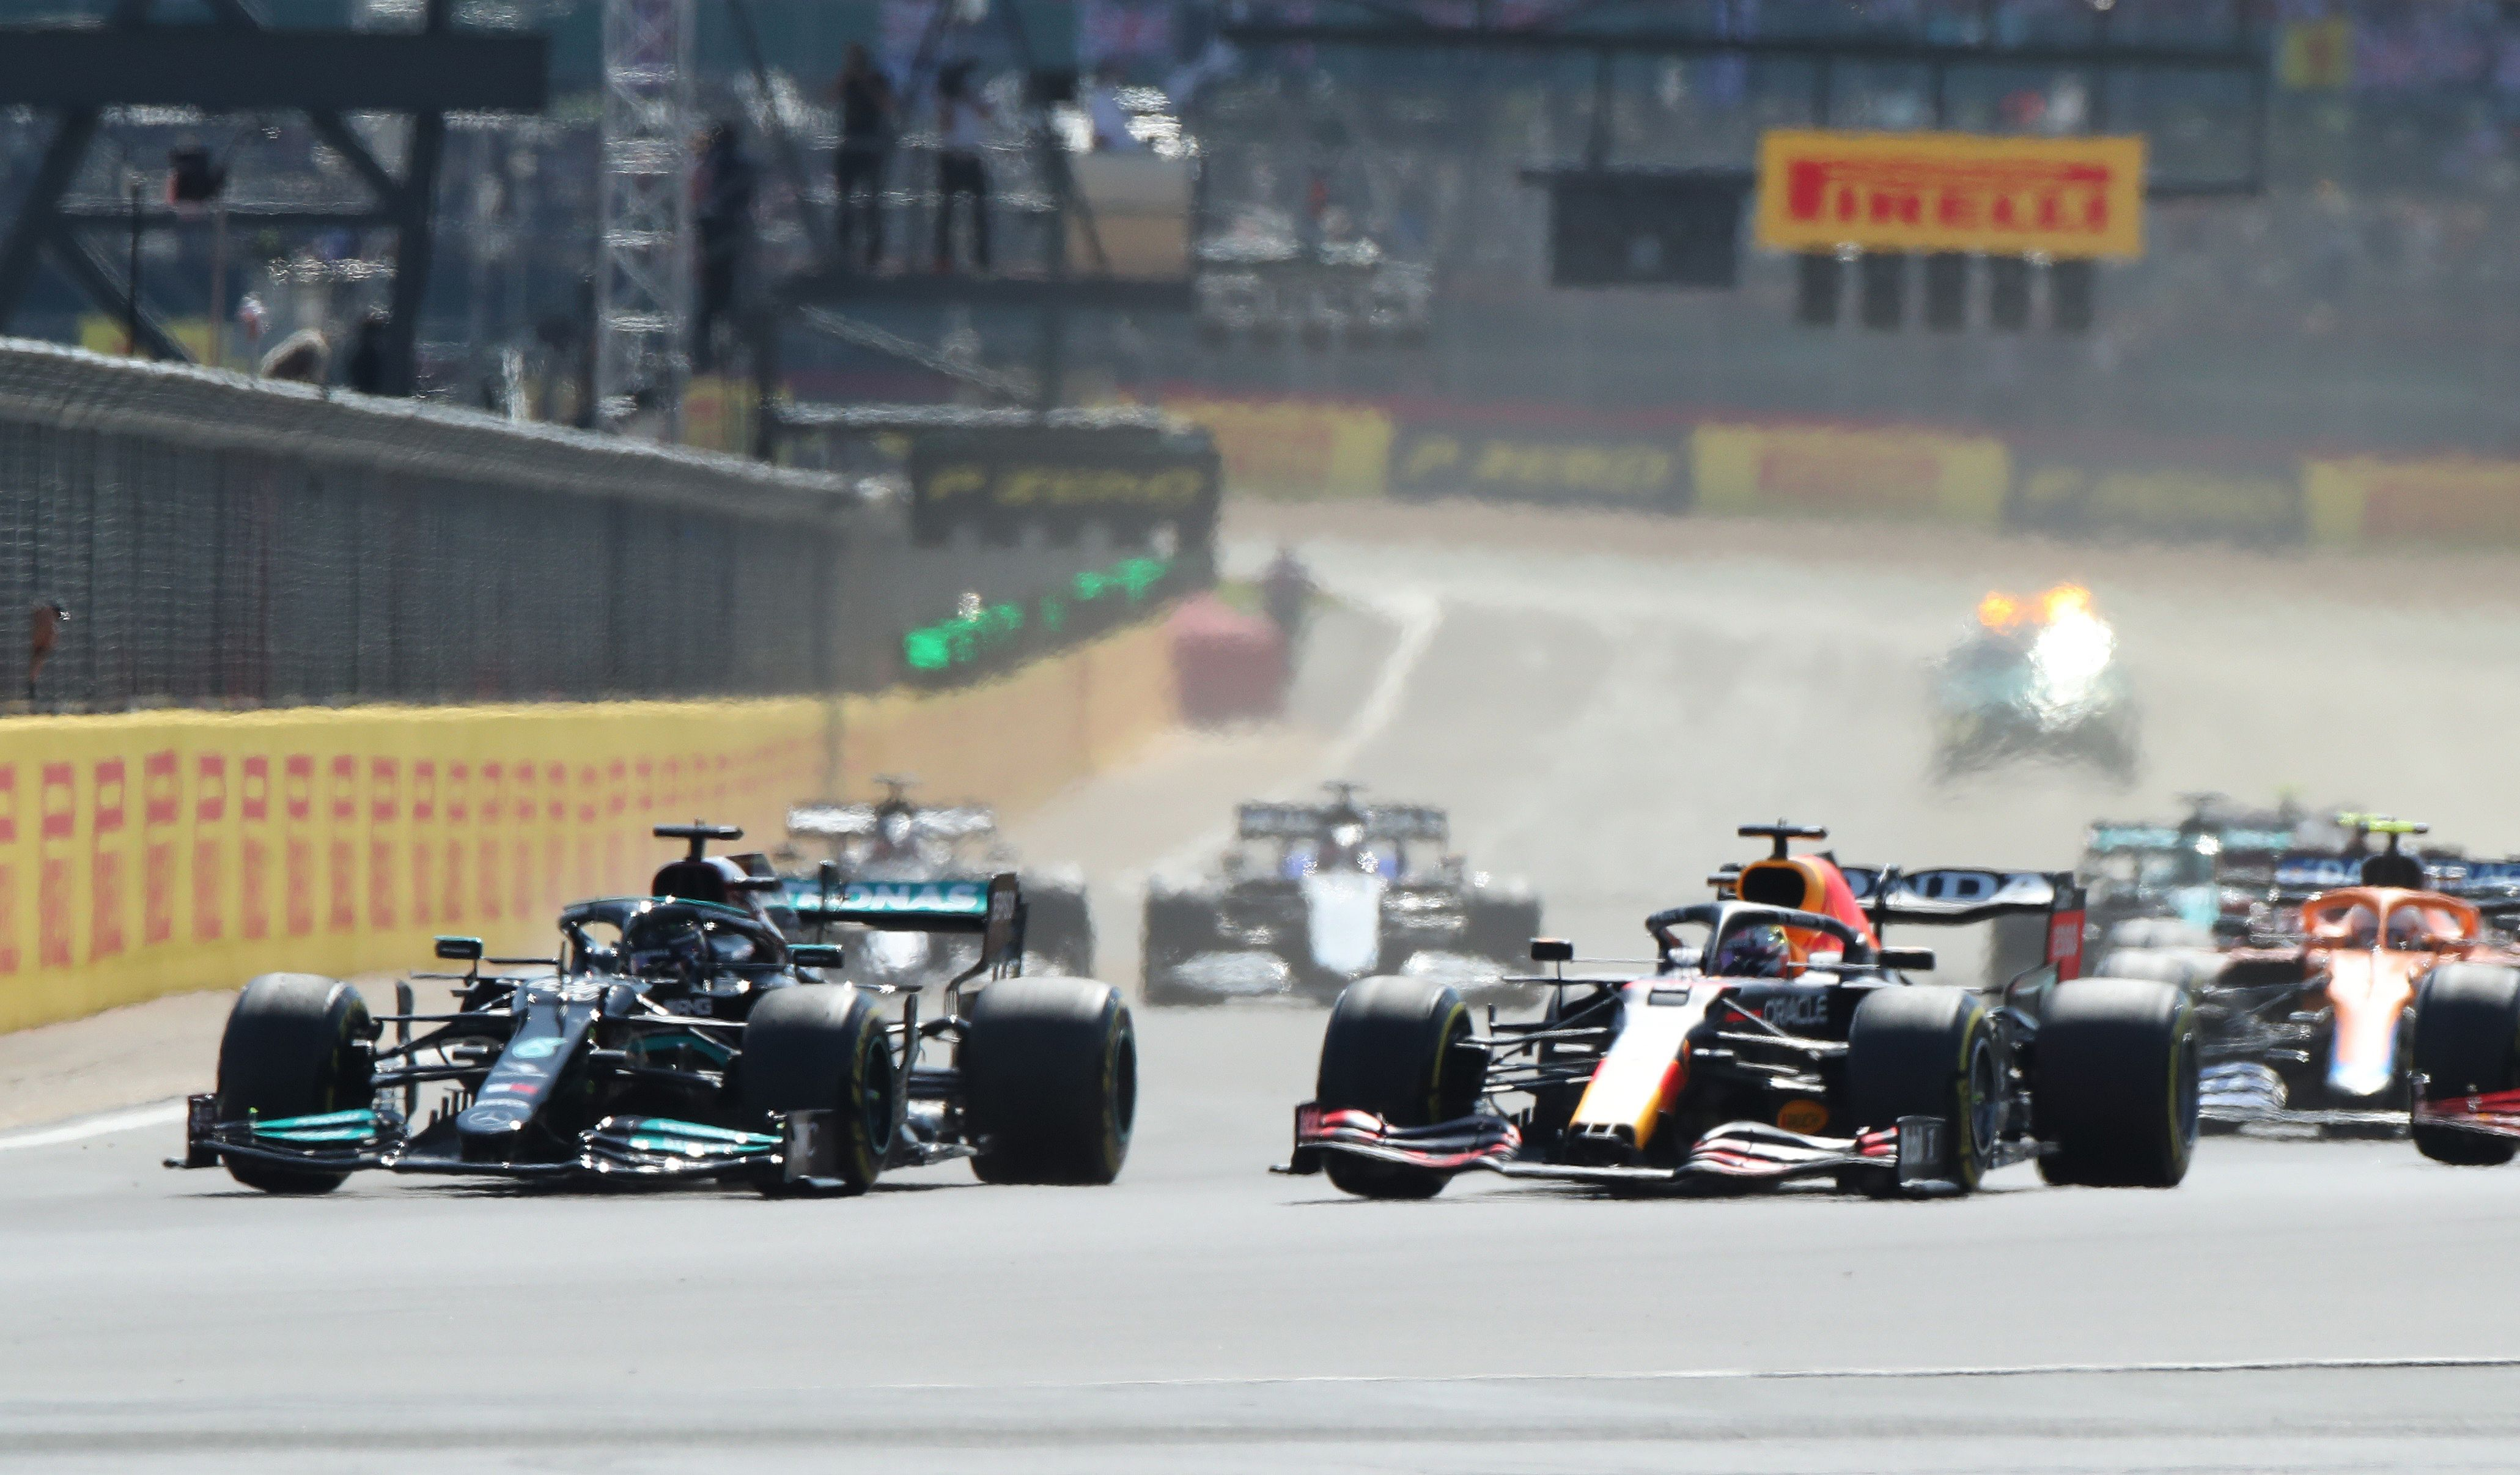 Formula One F1 - British Grand Prix - Silverstone Circuit, Silverstone, Britain - July 18, 2021 Red Bull's Max Verstappen leads at the start of the race ahead of Mercedes' Lewis Hamilton REUTERS/Peter Cziborra